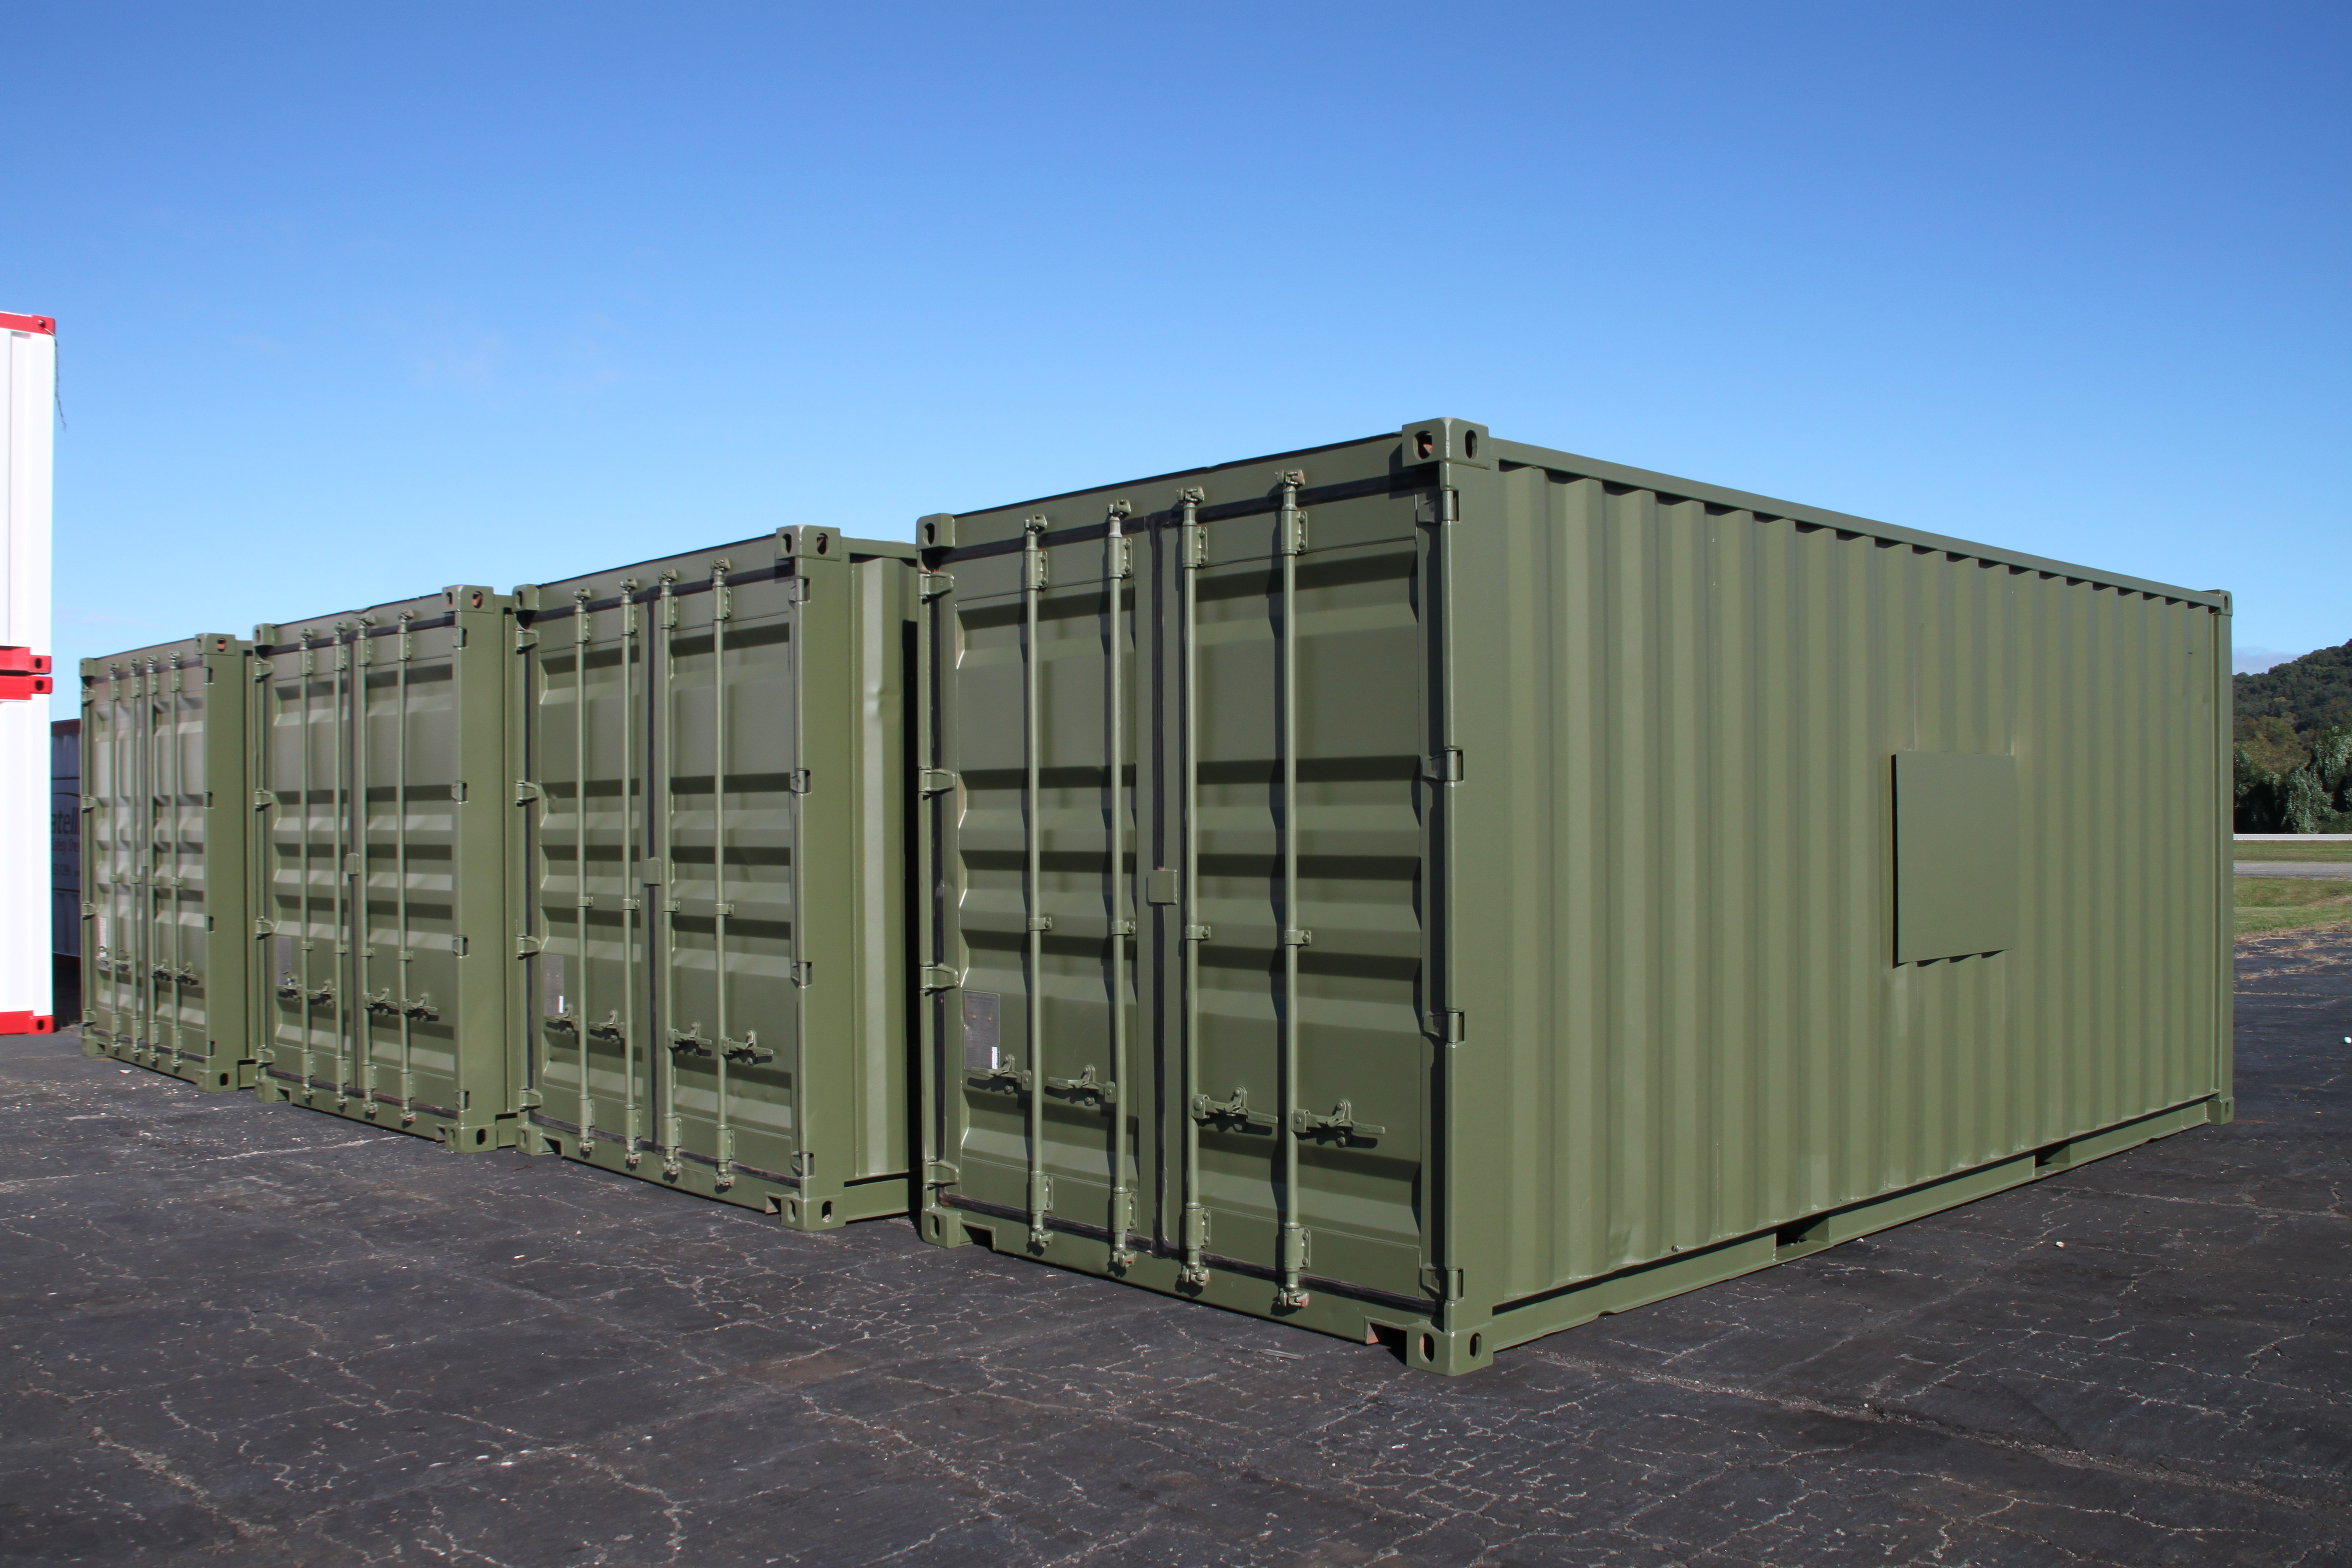 DropBox Inc, ISO Shipping container, shipping container modifications, Shipping container, ISO shipping container modification, IP-1 container, ReinventingTheBox